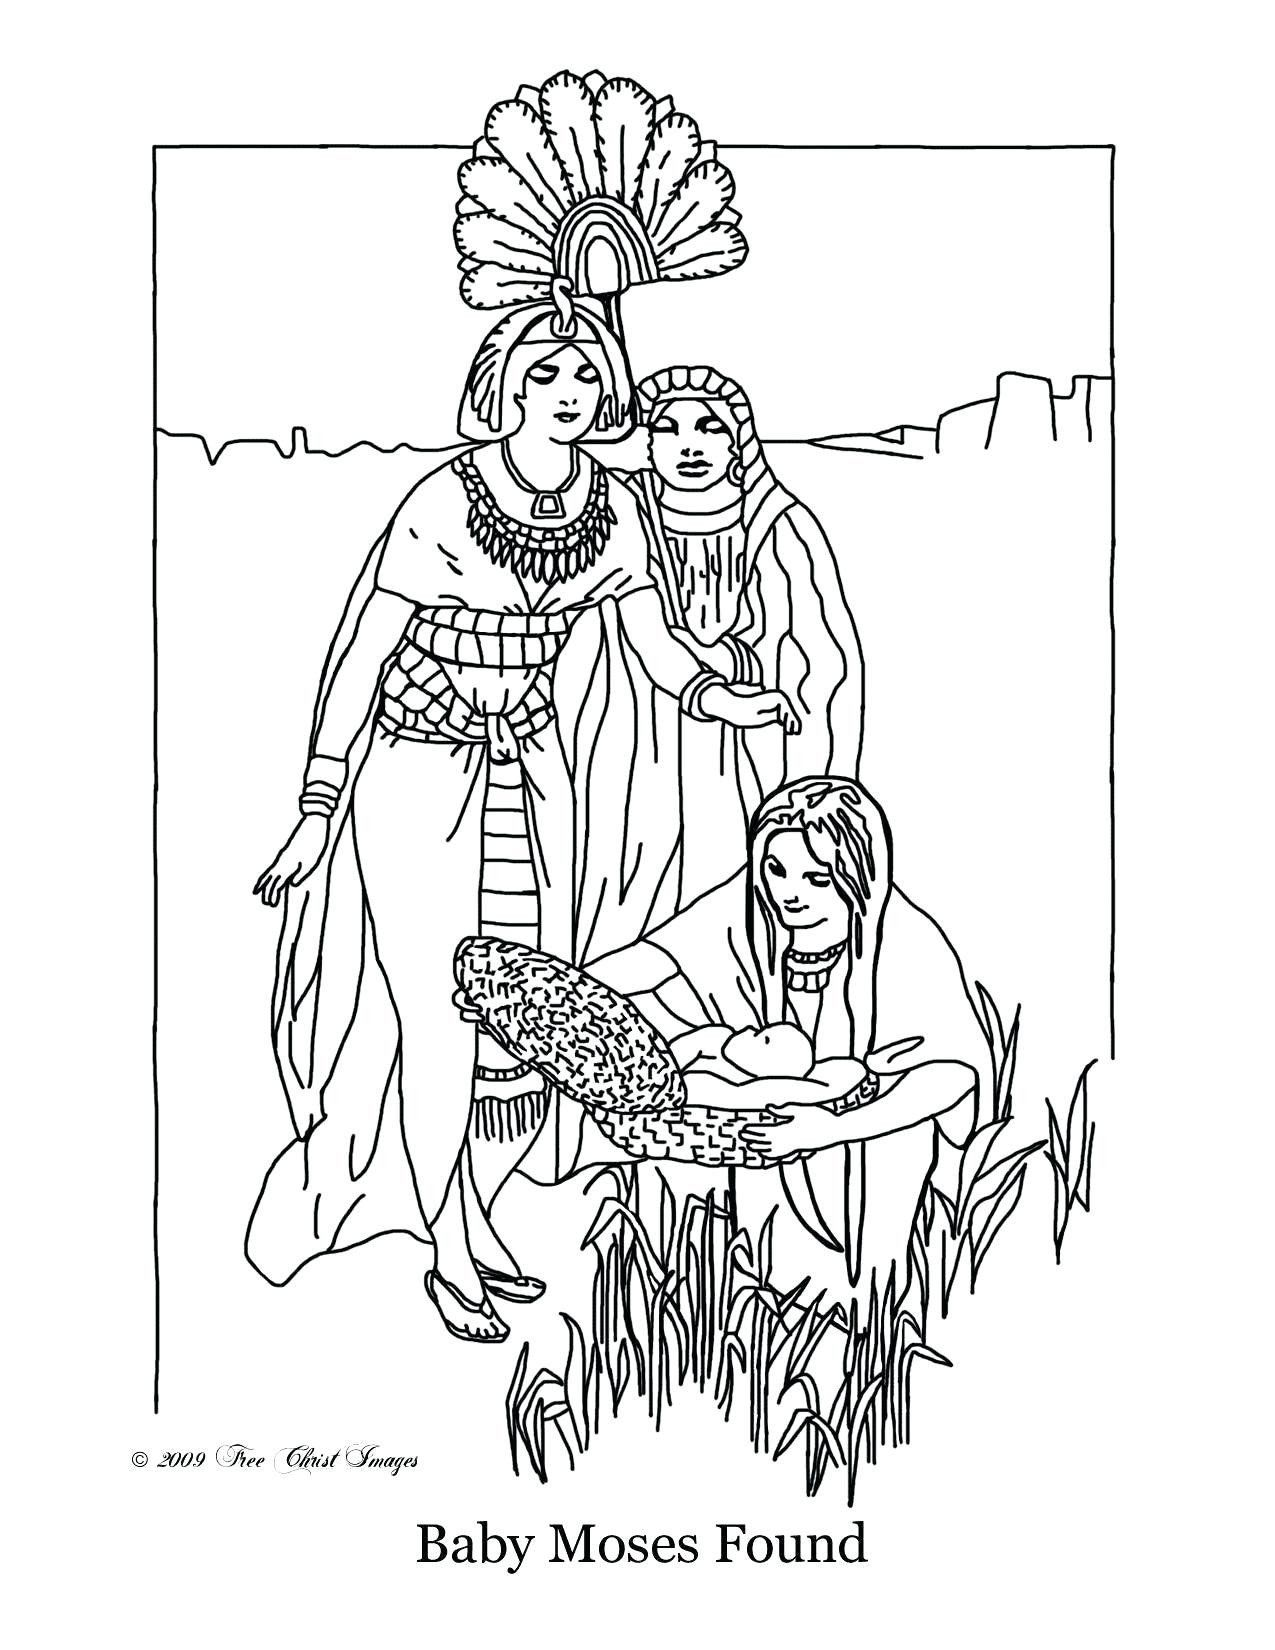 Baby Moses Coloring Page Awesome Free Christian Coloring Pages Moses Navajosheet